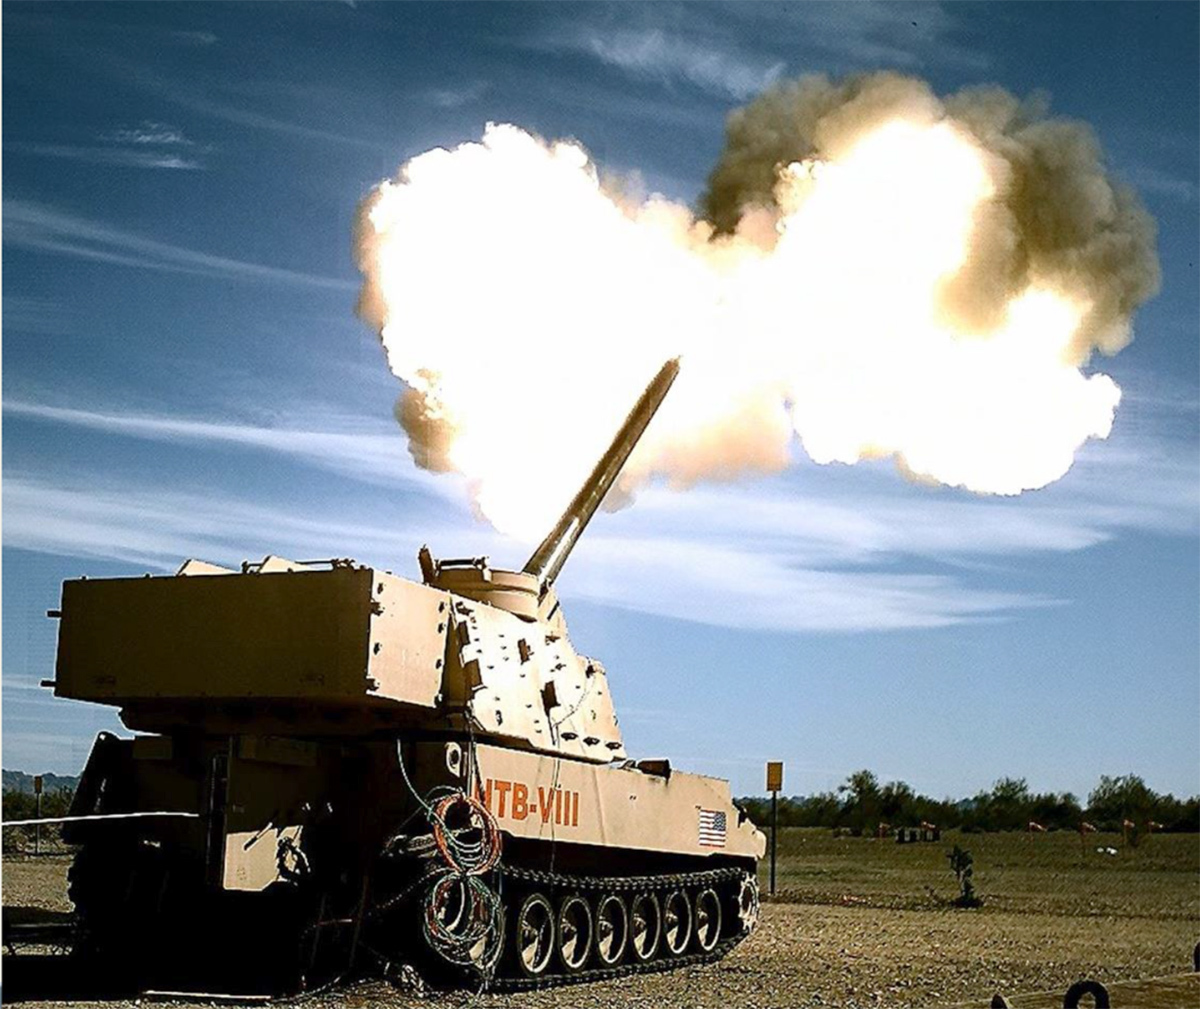 Extended Range Cannon Artillery, or ERCA, will be an improvement to the latest version of the Paladin self-propelled howitzer that provides indirect fires for the brigade combat team and division-level fight. The Army is working to develop an autoloader for the cannon to be fielded by 2024 and has turned to non-traditional companies to solve that big problem. (Photo by Edward Lopez/U.S. Army)